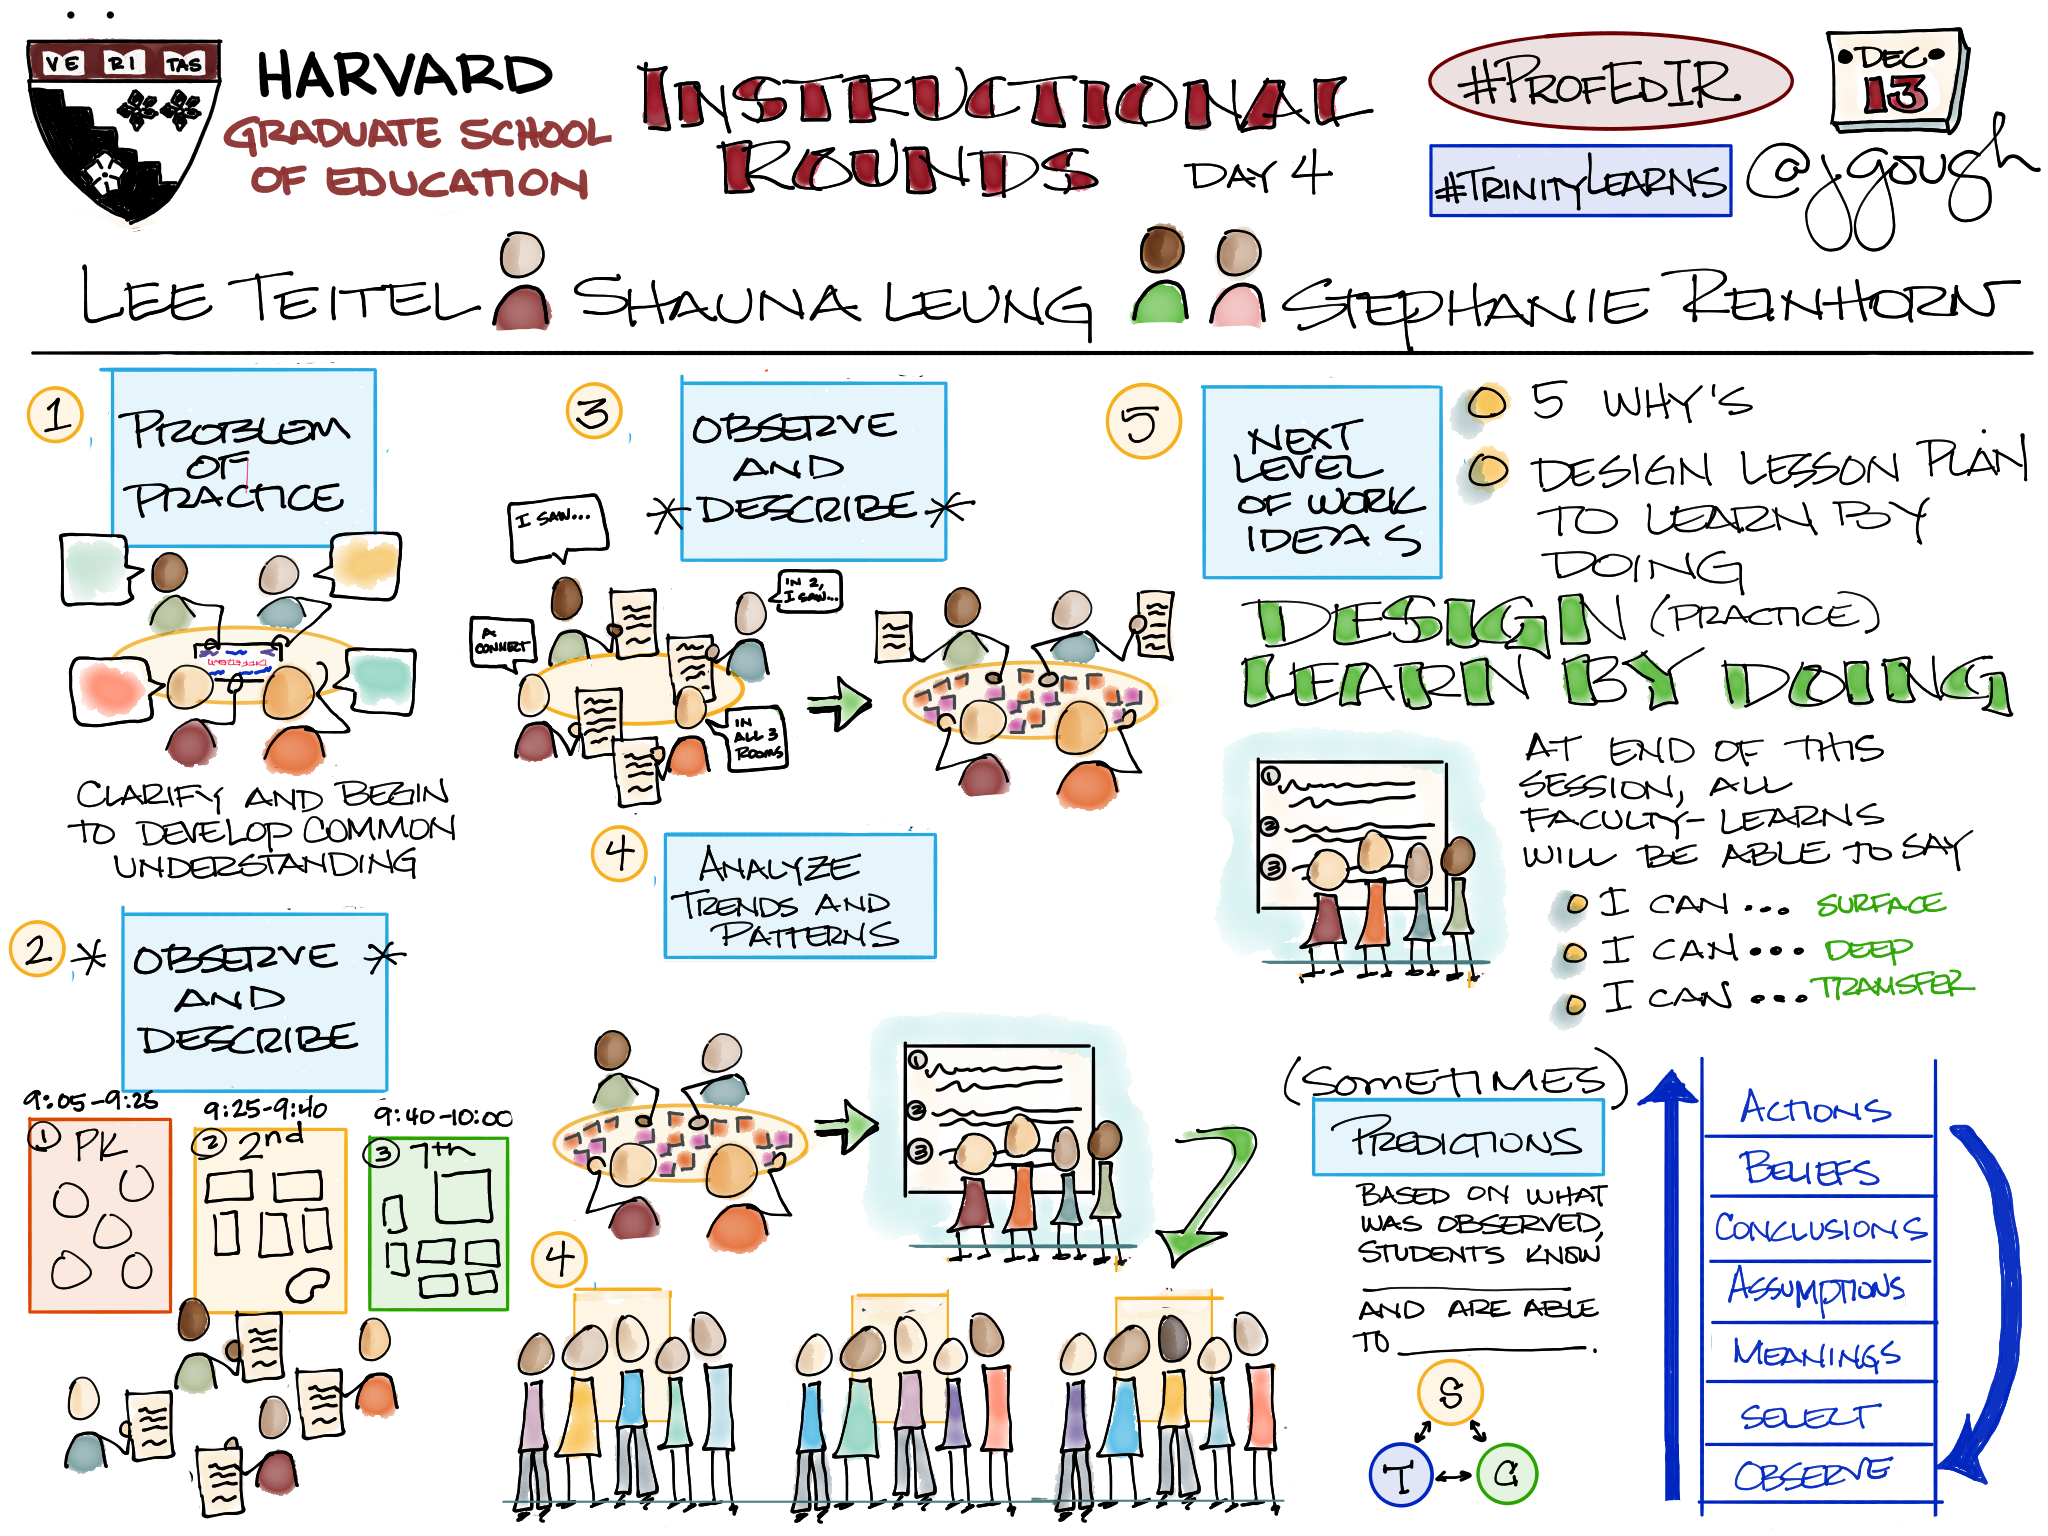 Sharing my #Sketchnotes from #ProfEdIR @HGSE Instructional Rounds in Practice (Day 4) – #TrinityLearns by doing